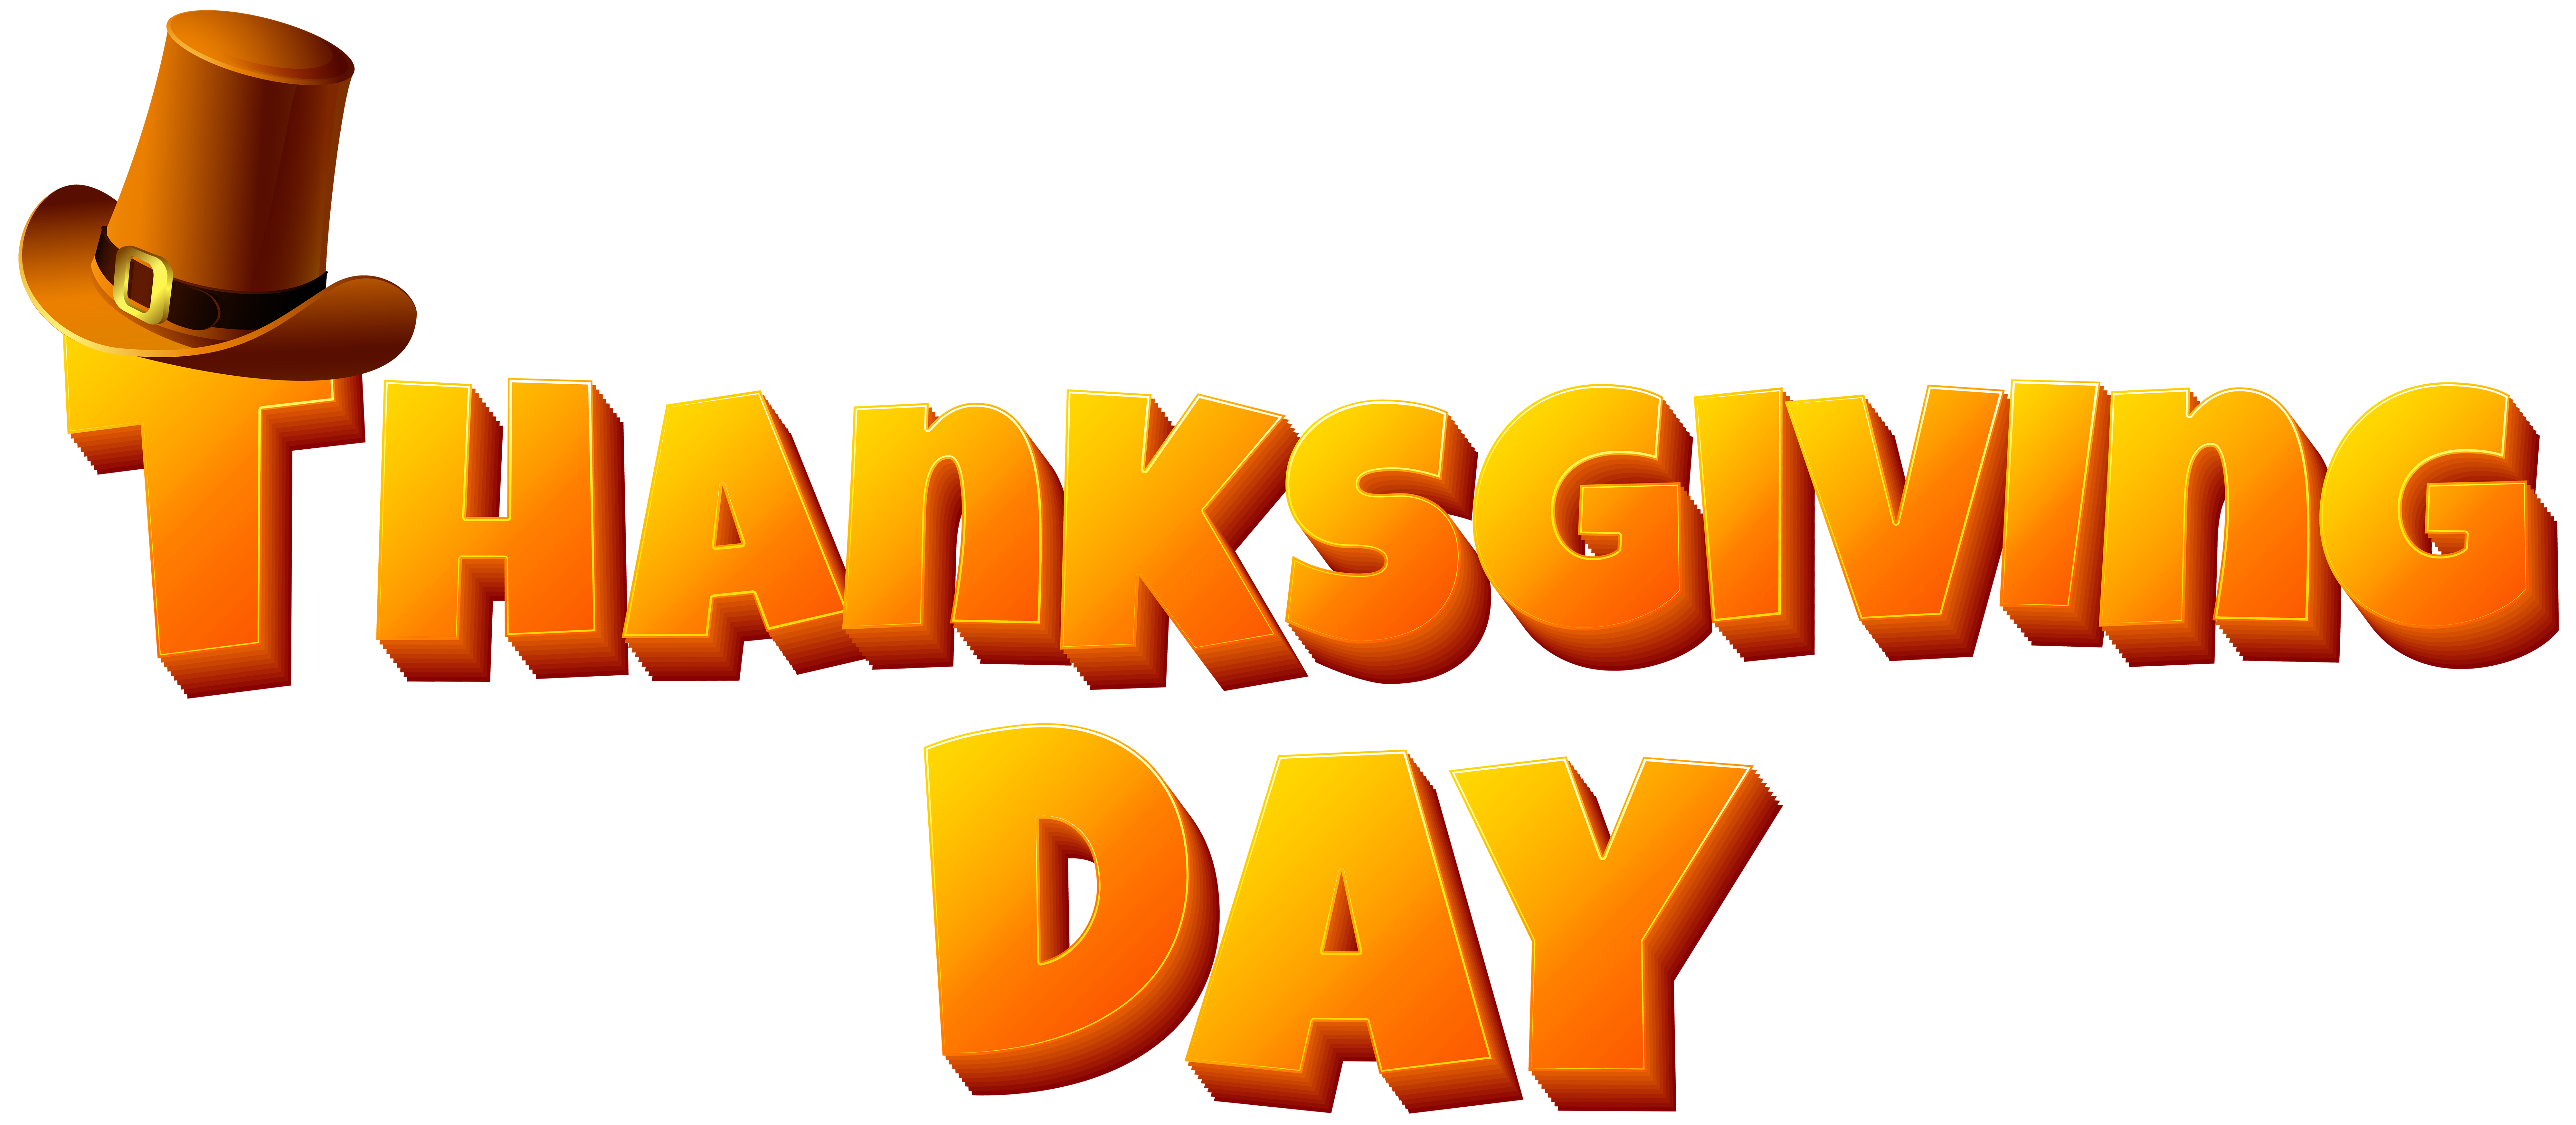 Thanksgiving transparent image gallery yopriceville high png